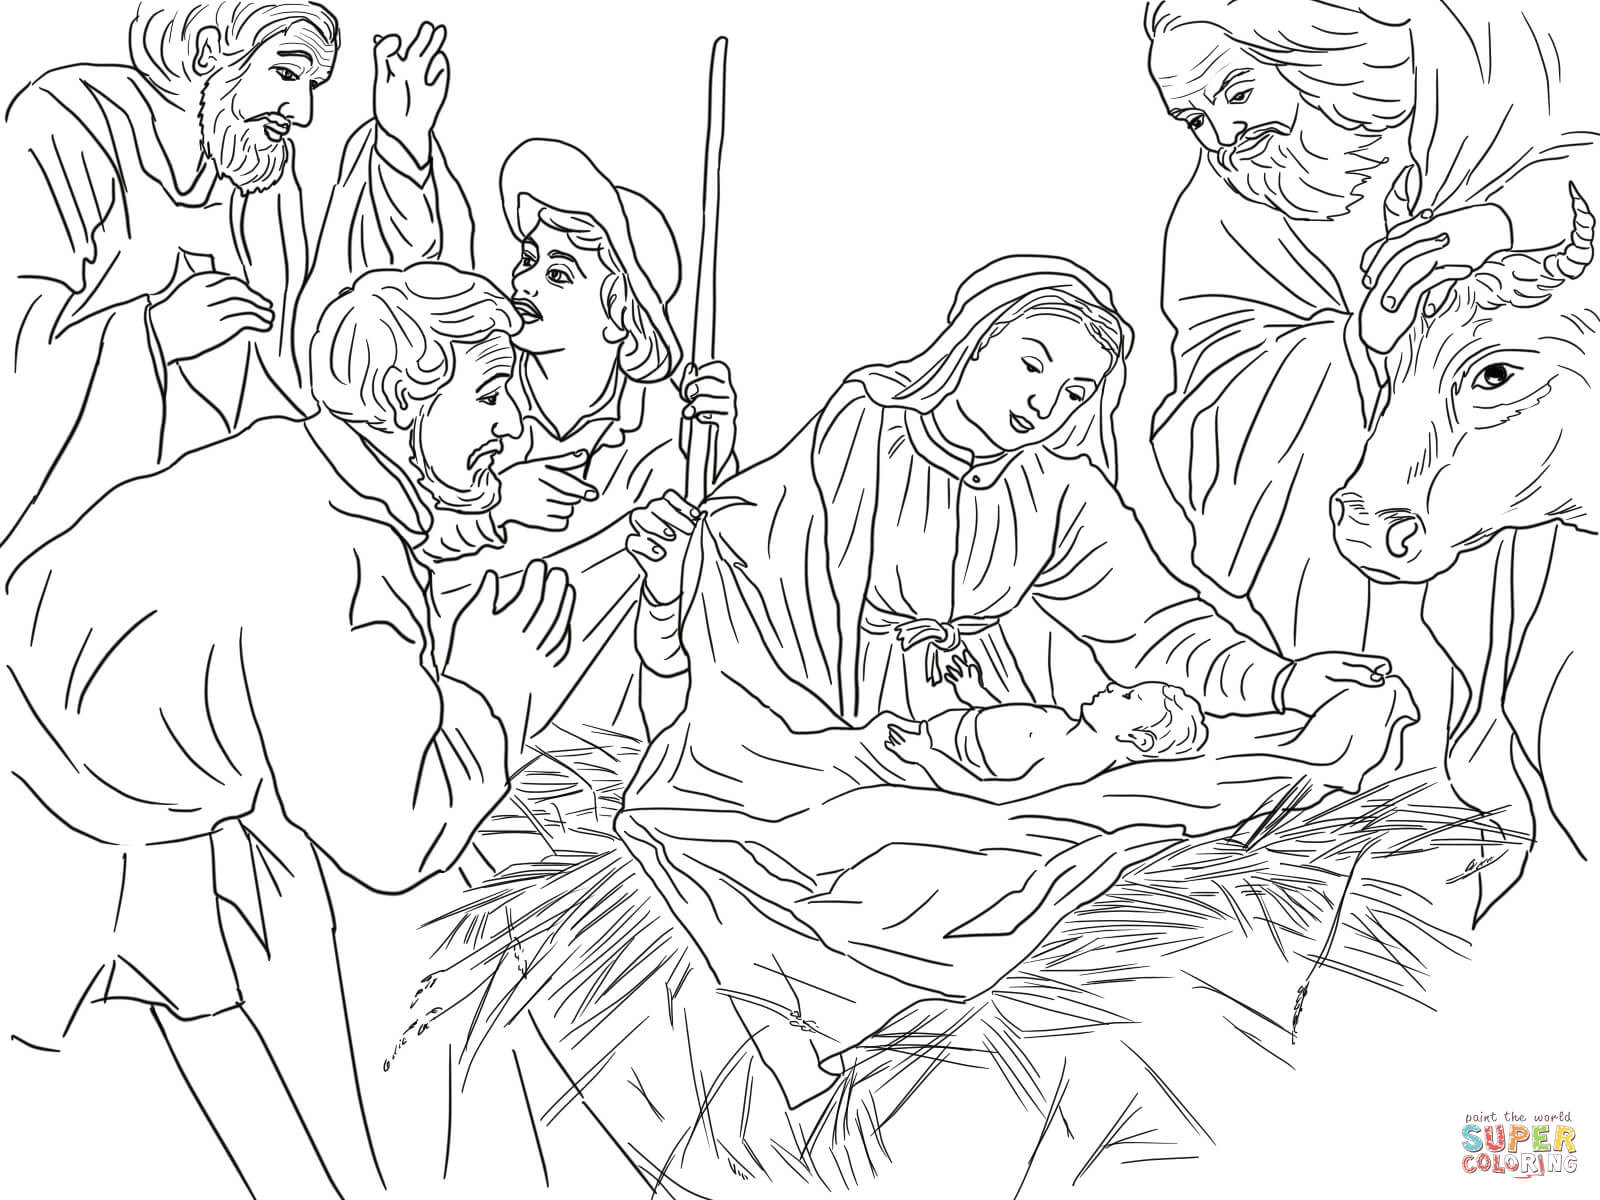 Shepherds Coloring Pages  Adoration of the Shepherds coloring page